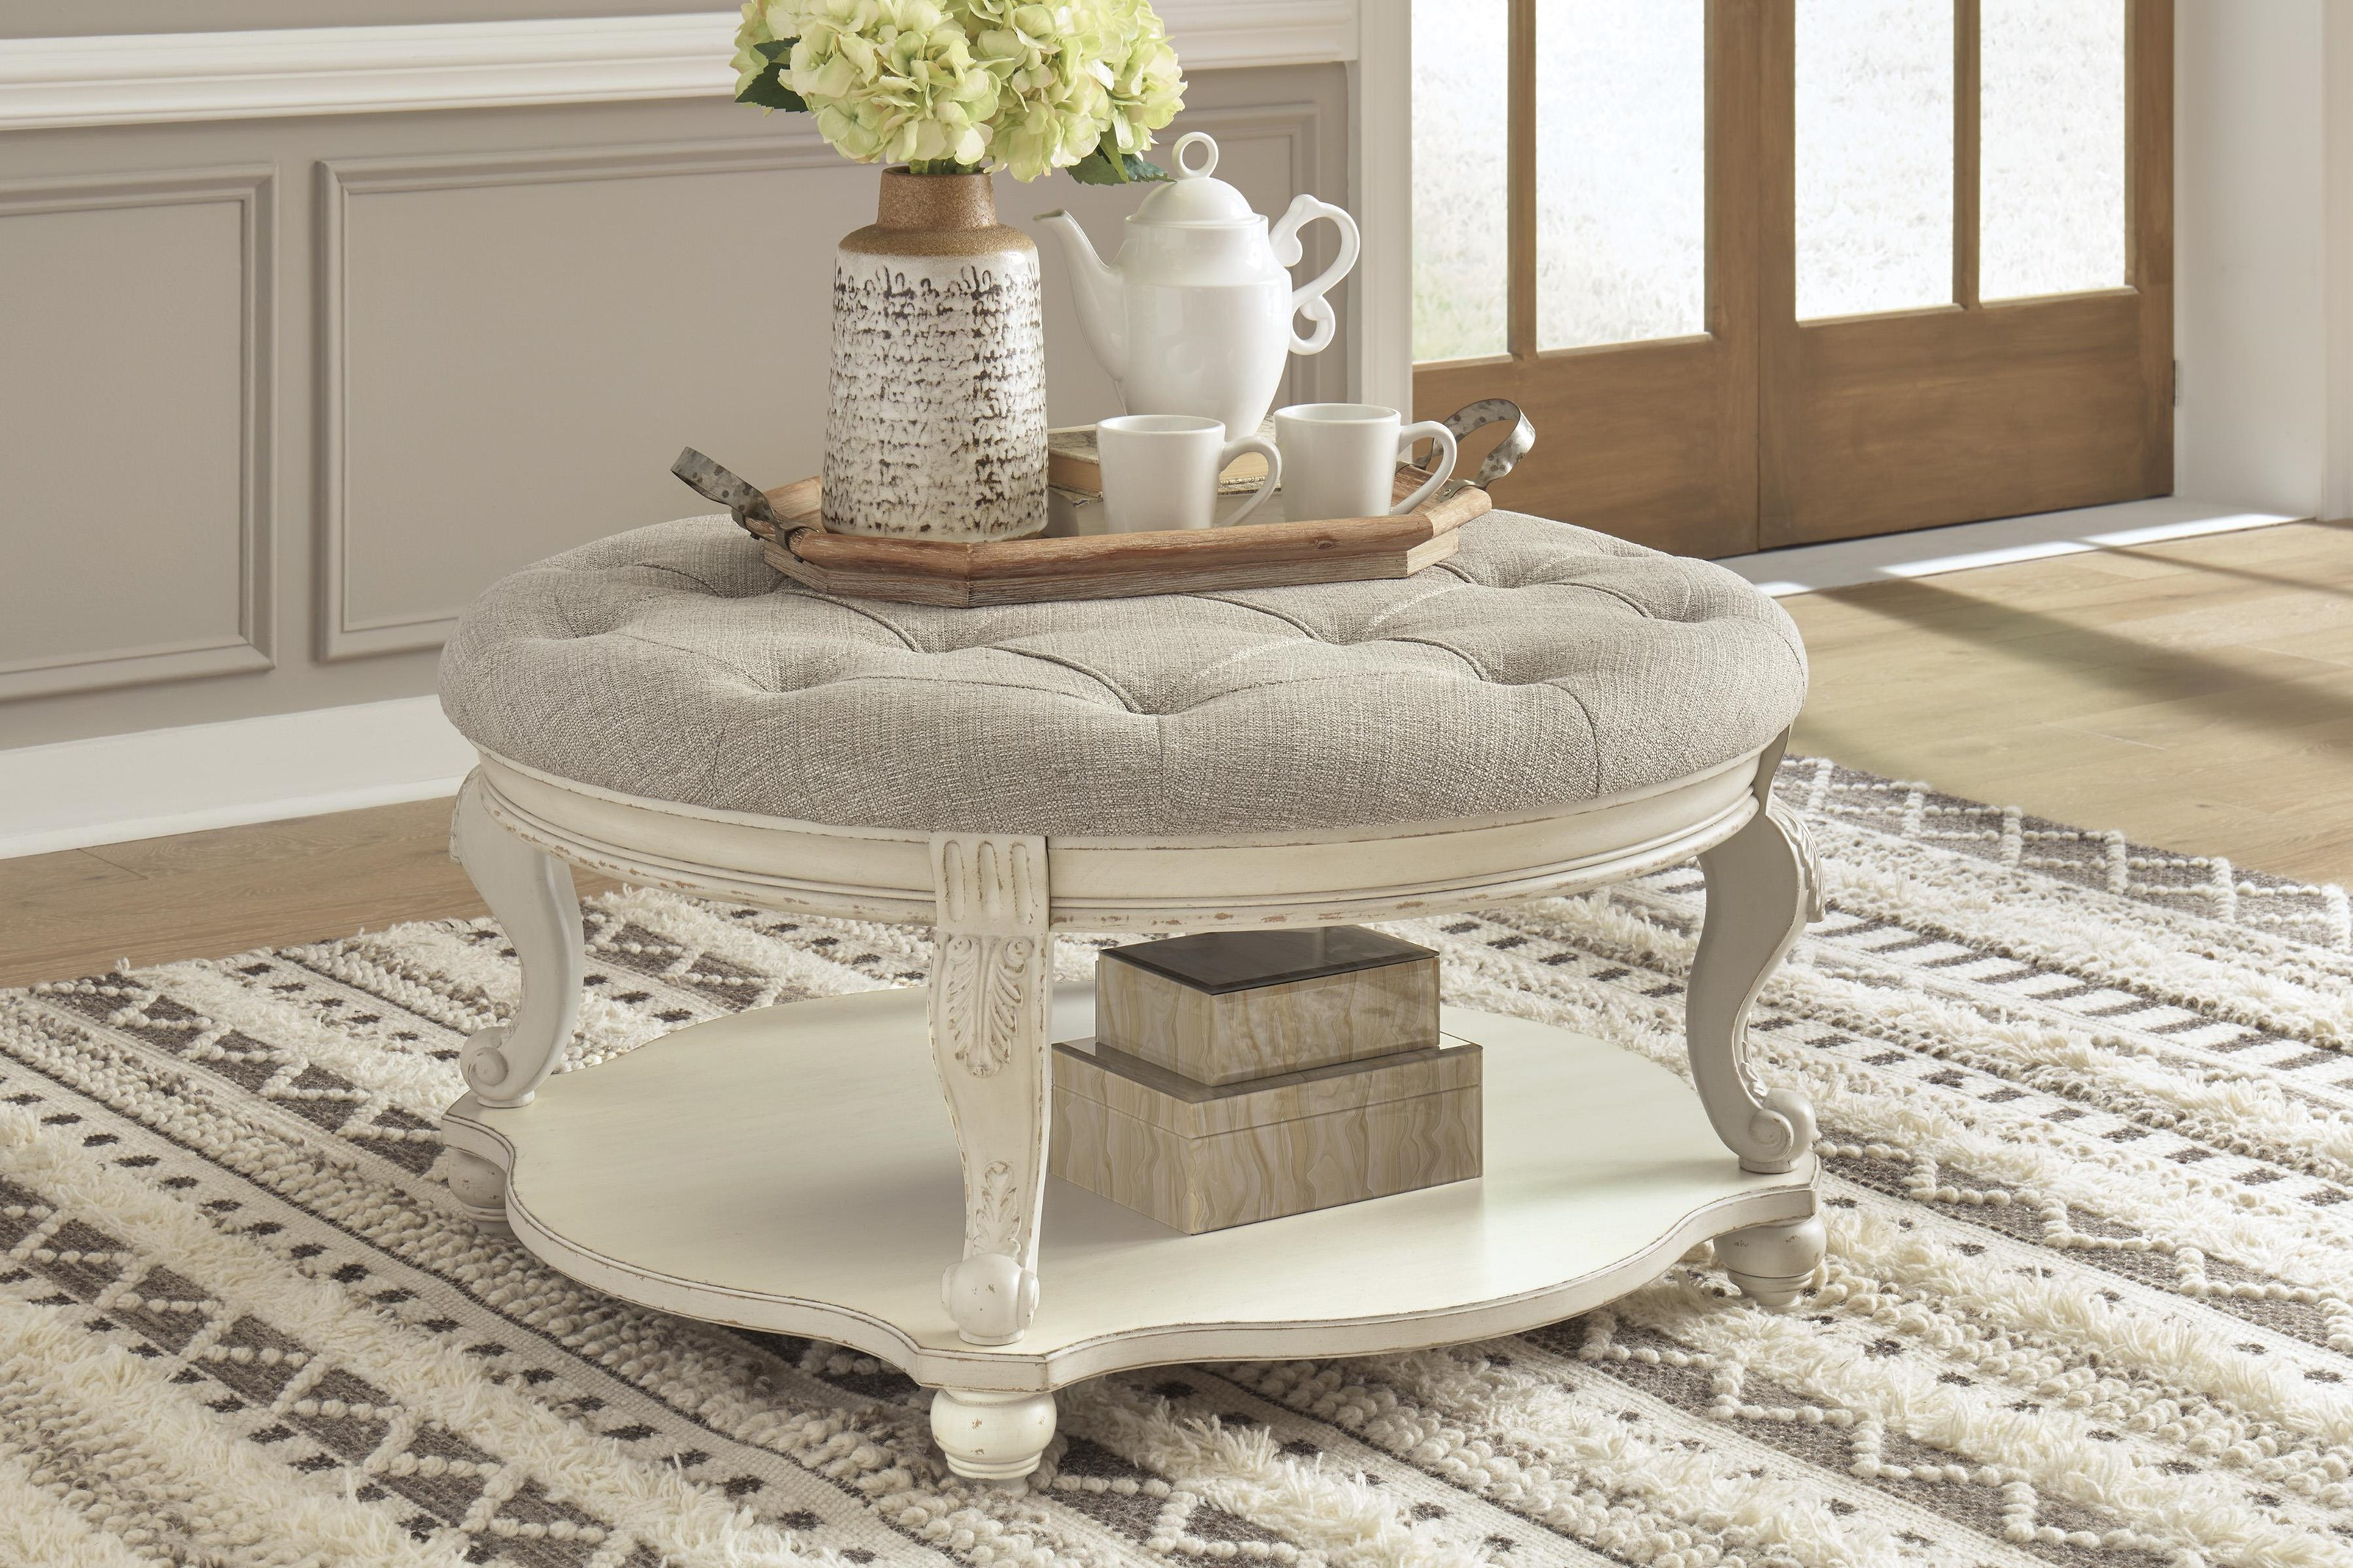 Realyn 3 Piece Coffee Table Set by Signature Design by Ashley at Sam Levitz Outlet